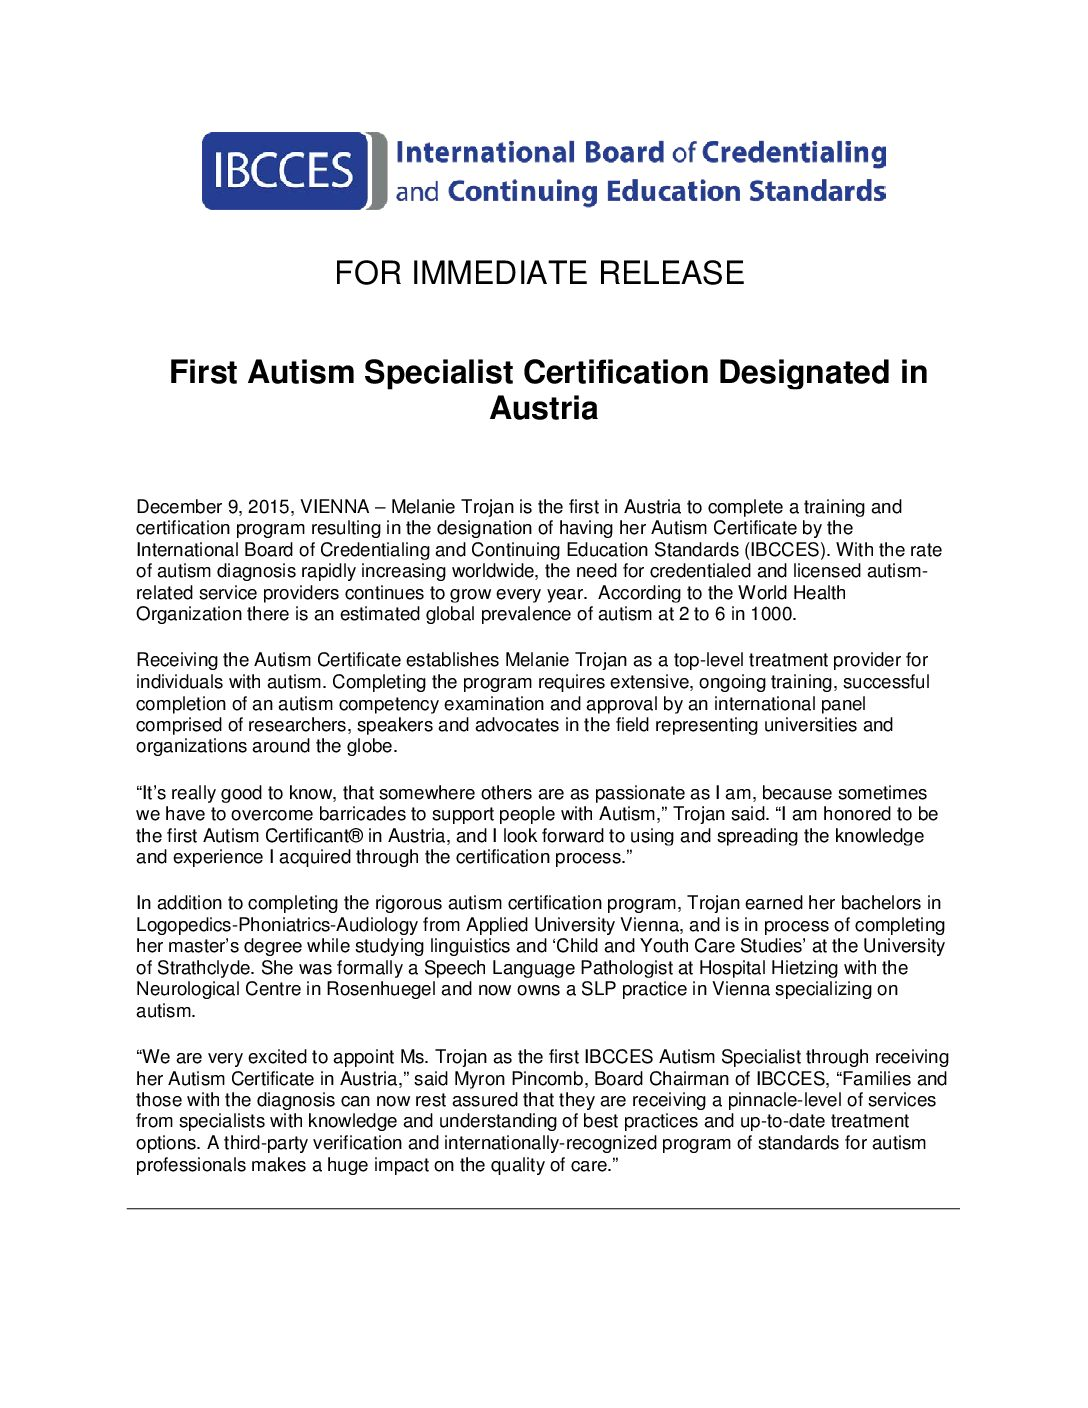 Pr 120915 First Autism Specialist Certification Designated In